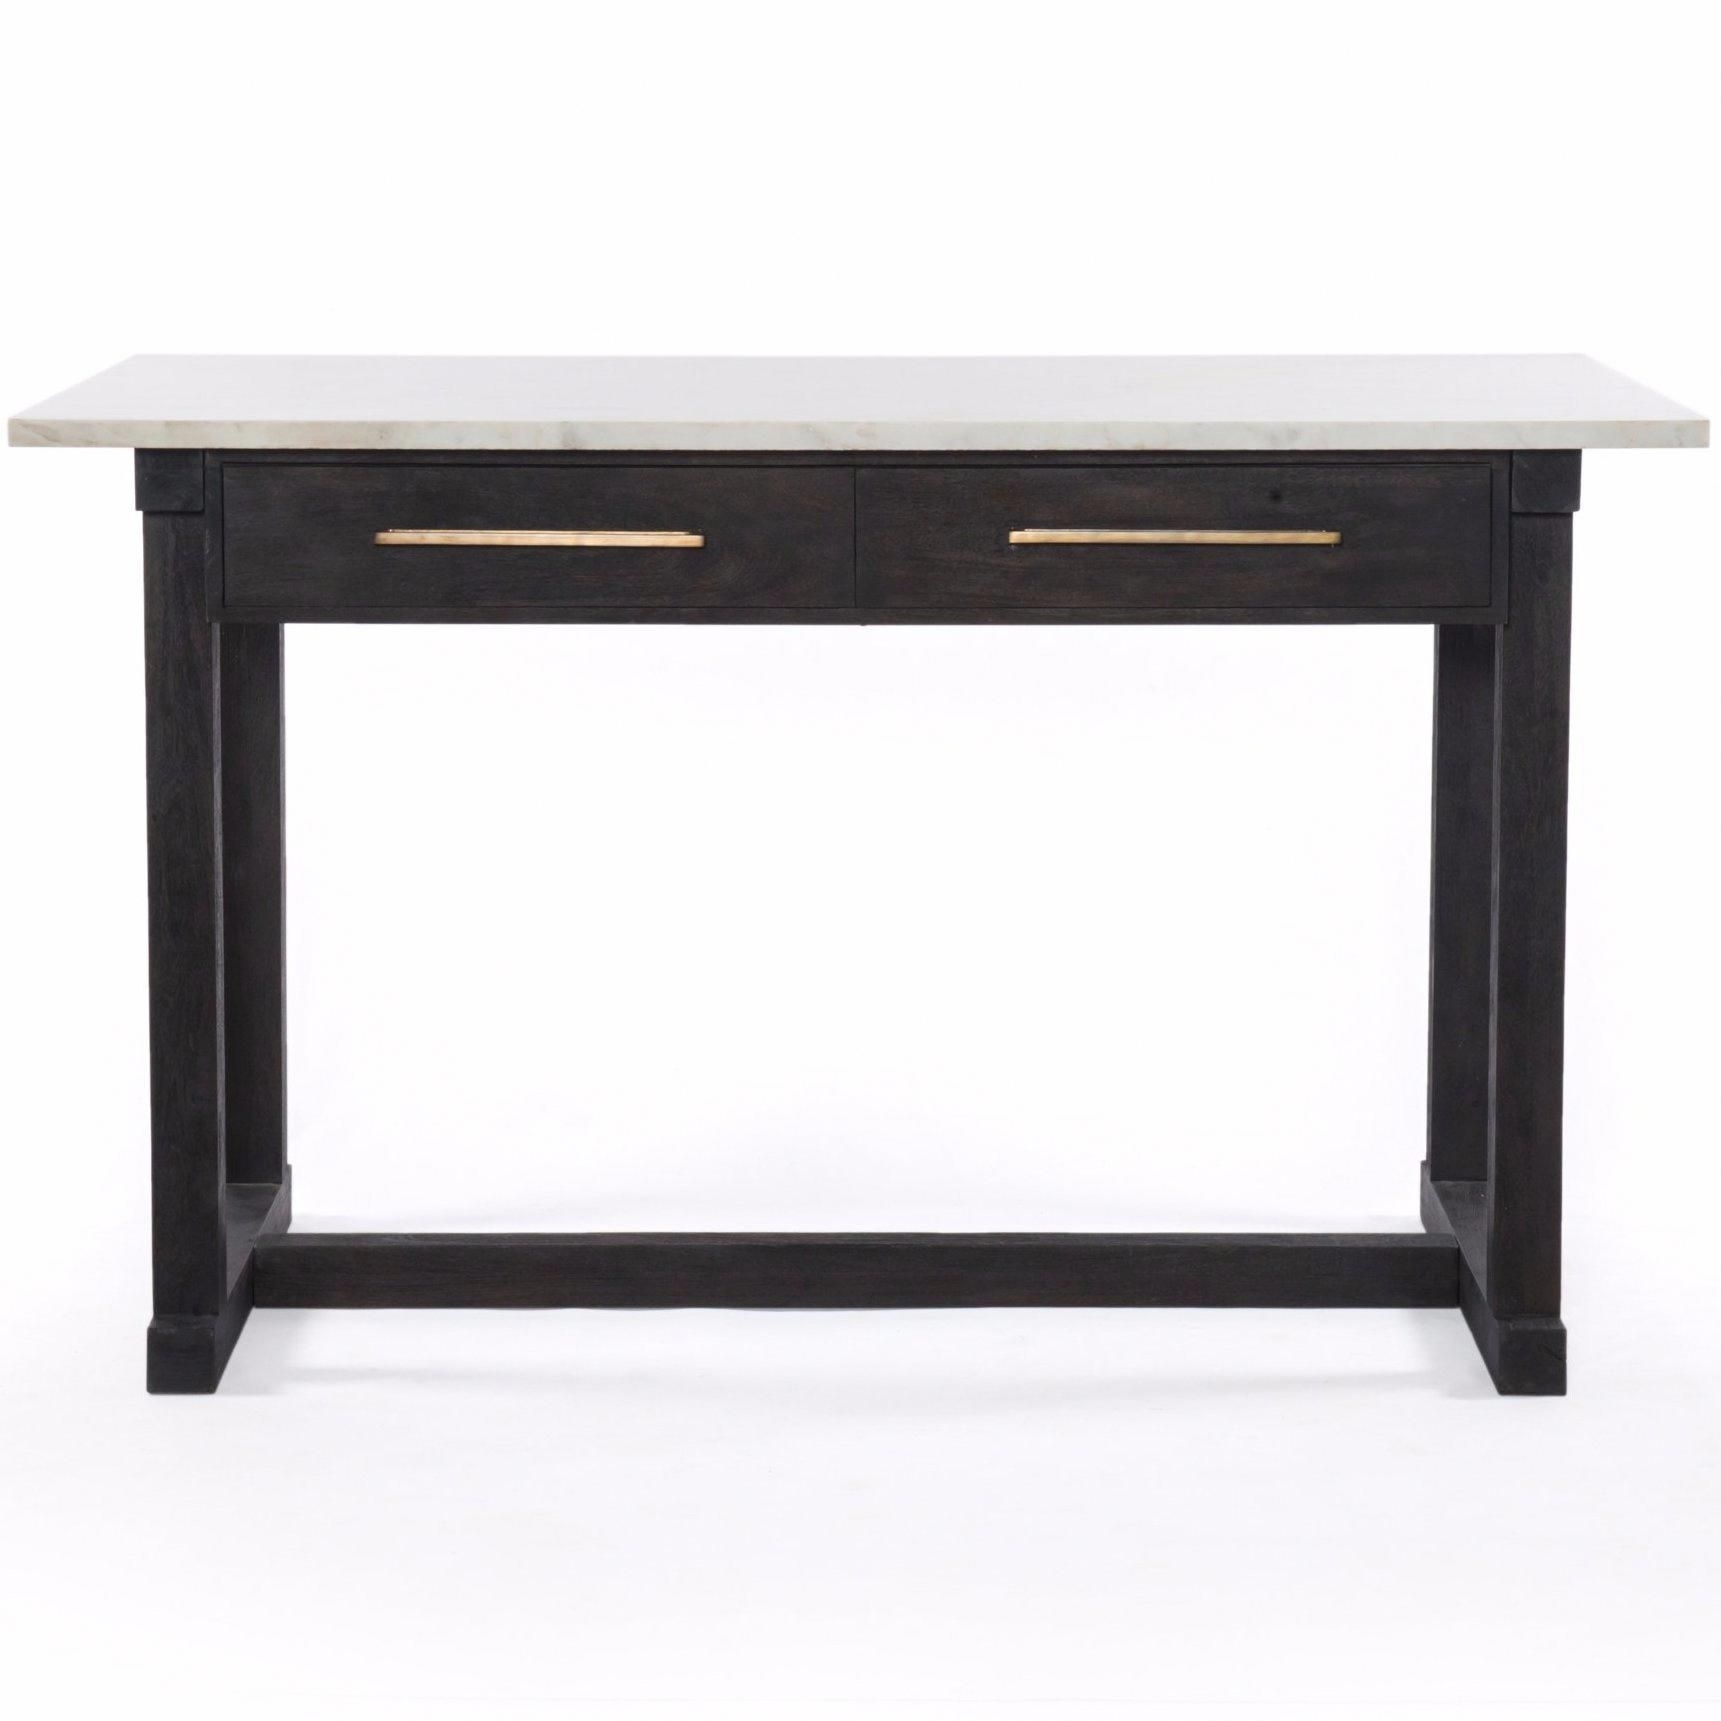 "Accent Tables:cayson Counter Table In Dark Anthracite Designbd inside Chevron 48"" Coffee Tables (Image 1 of 9)"